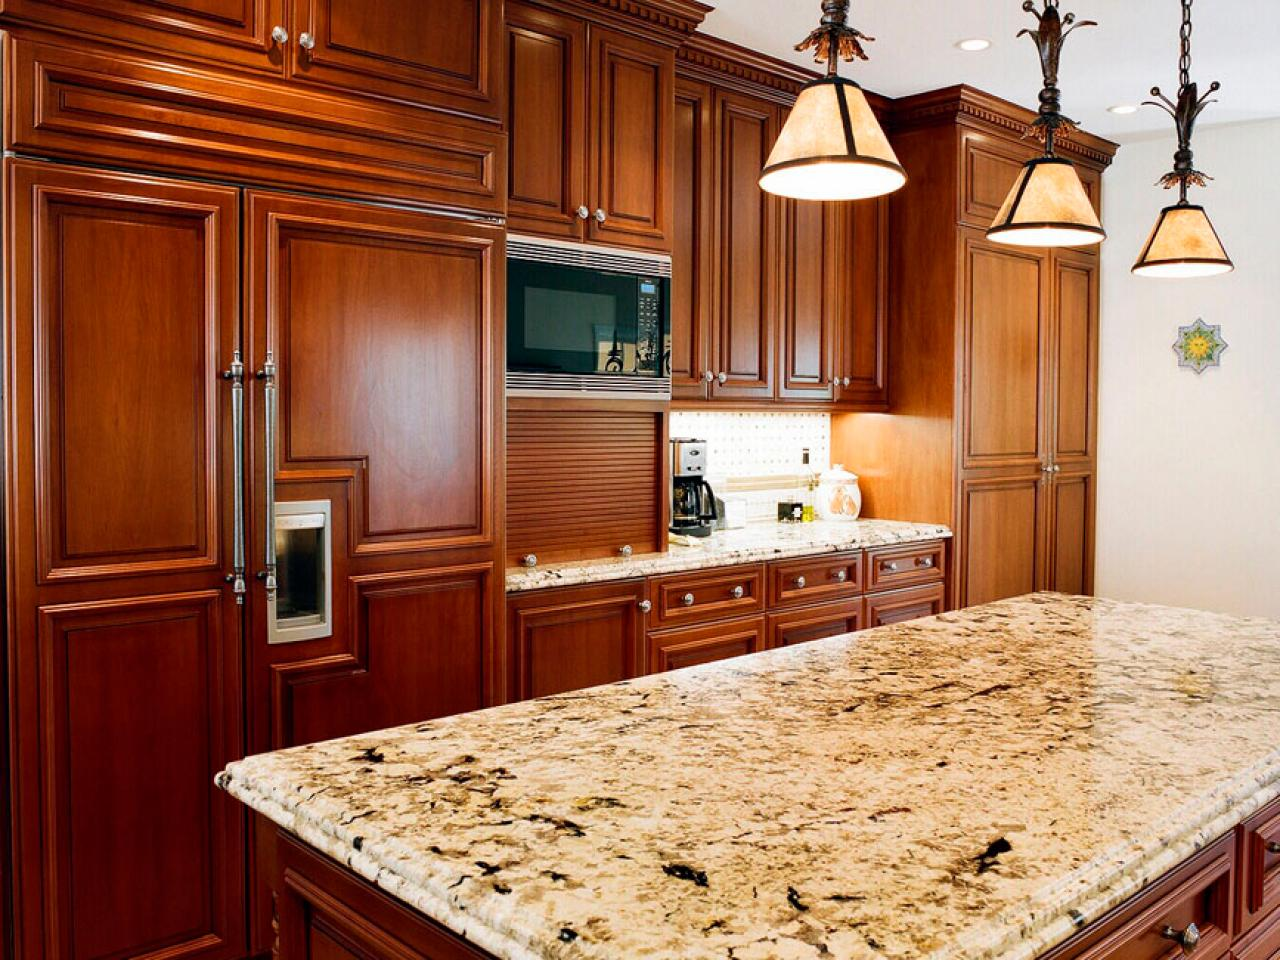 Kitchen Remodeling Where To Splurge Where To Save HGTV - What is the cost of a kitchen remodel